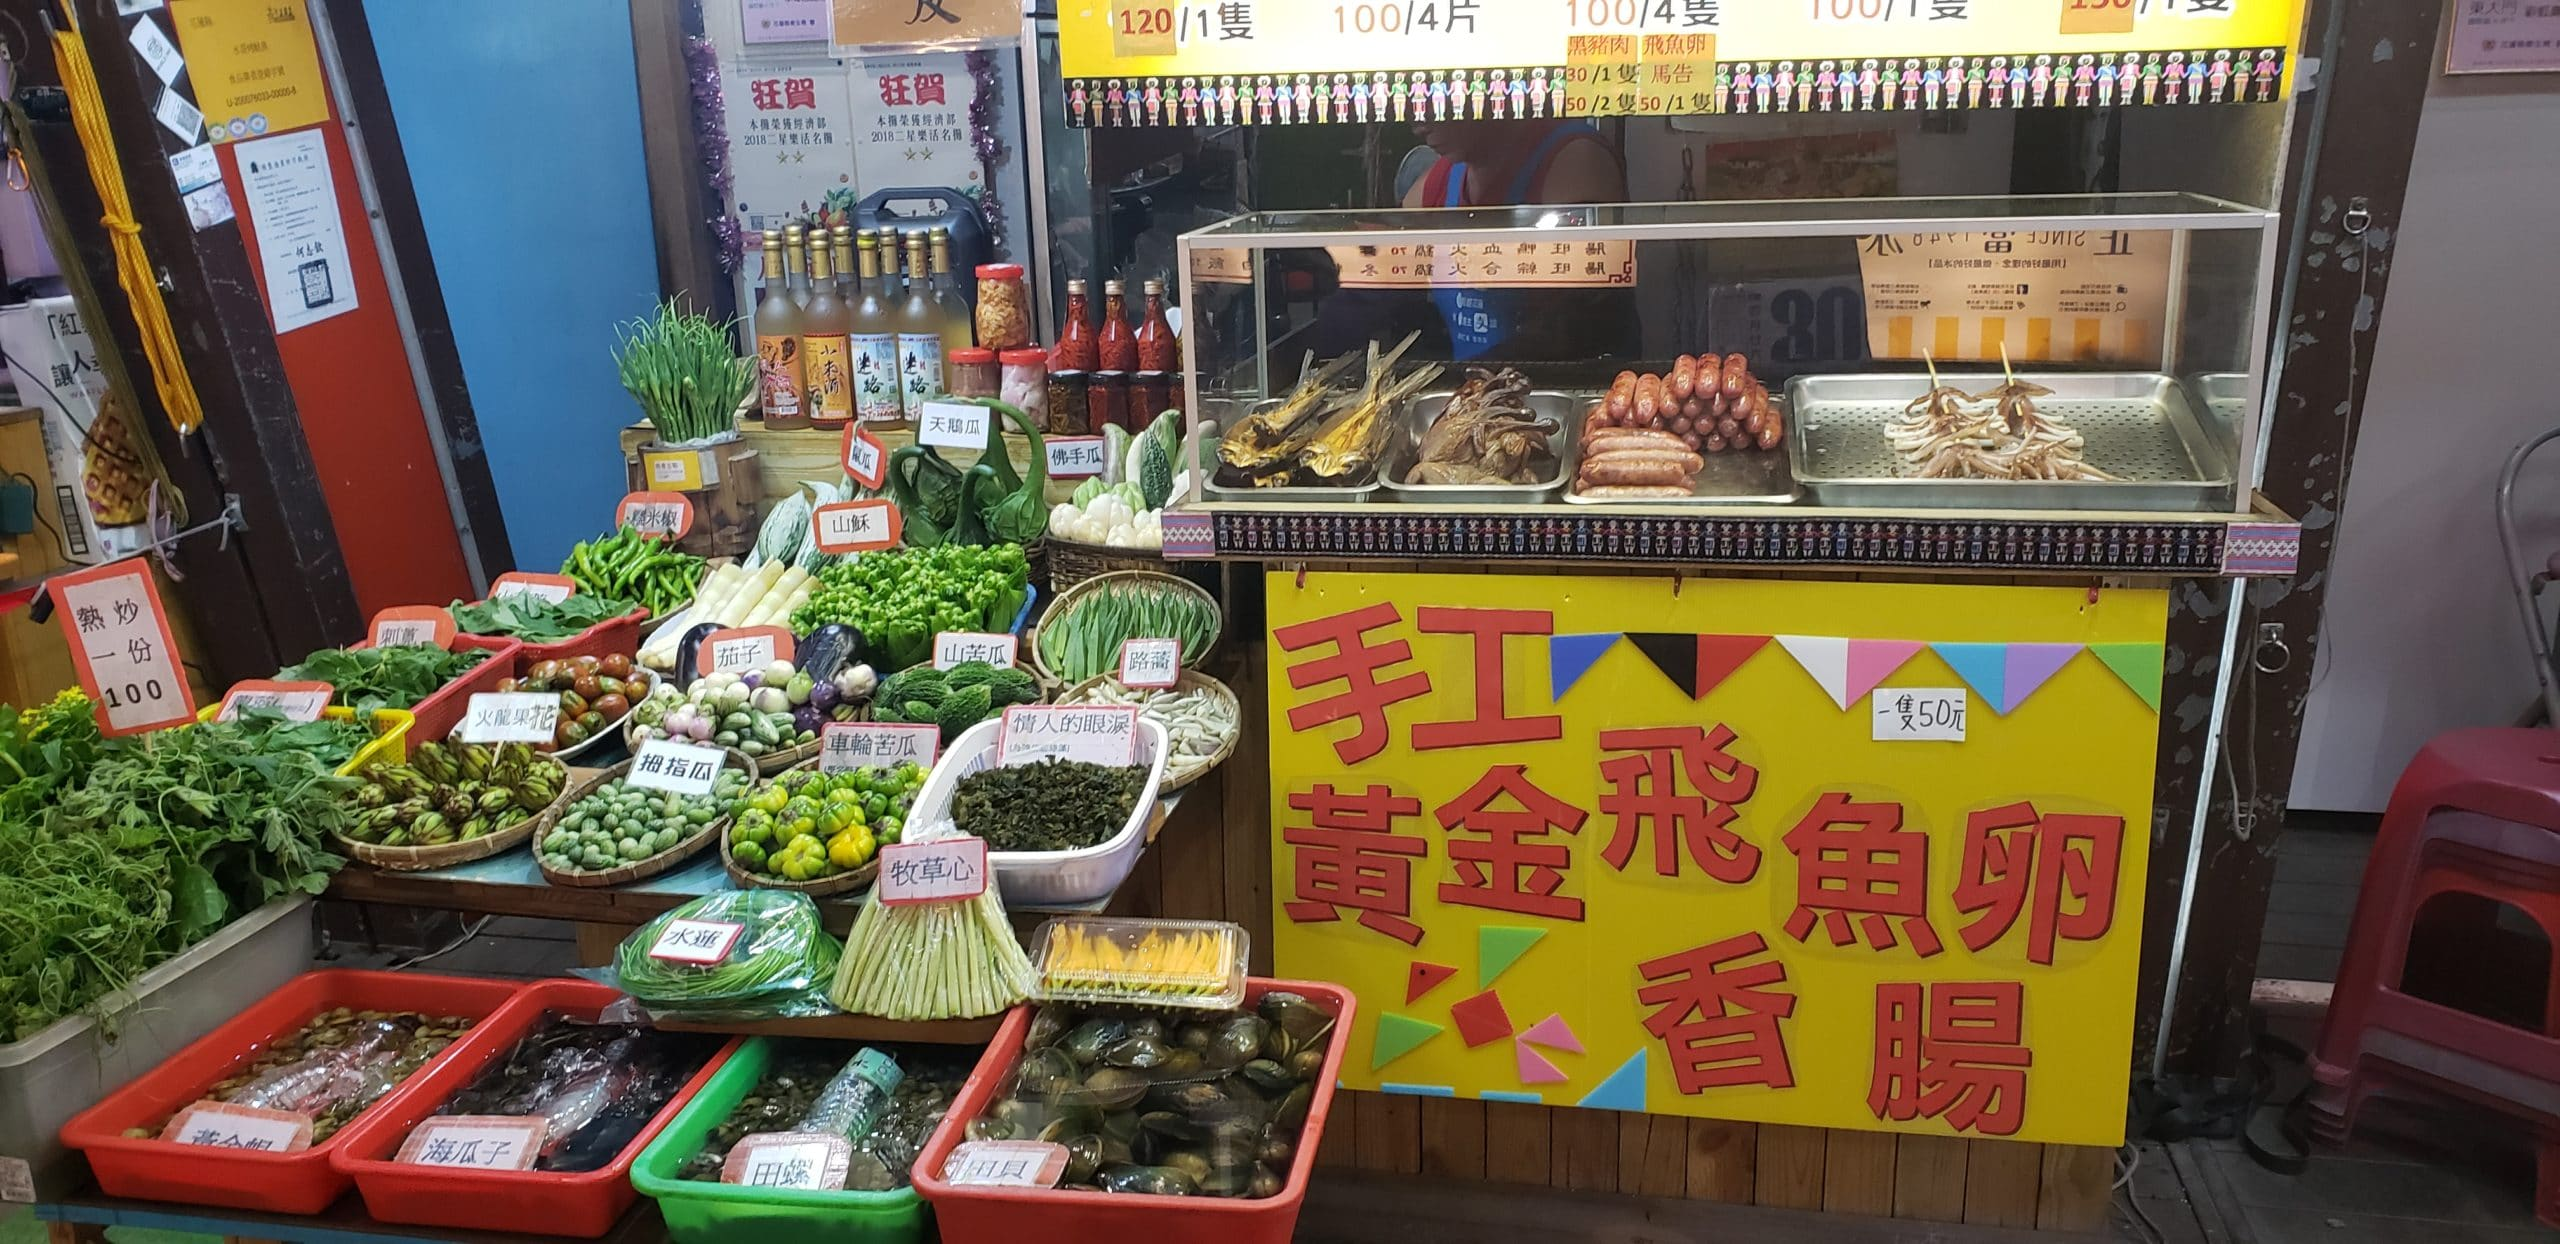 Isaac Maier Night market vegetable stand